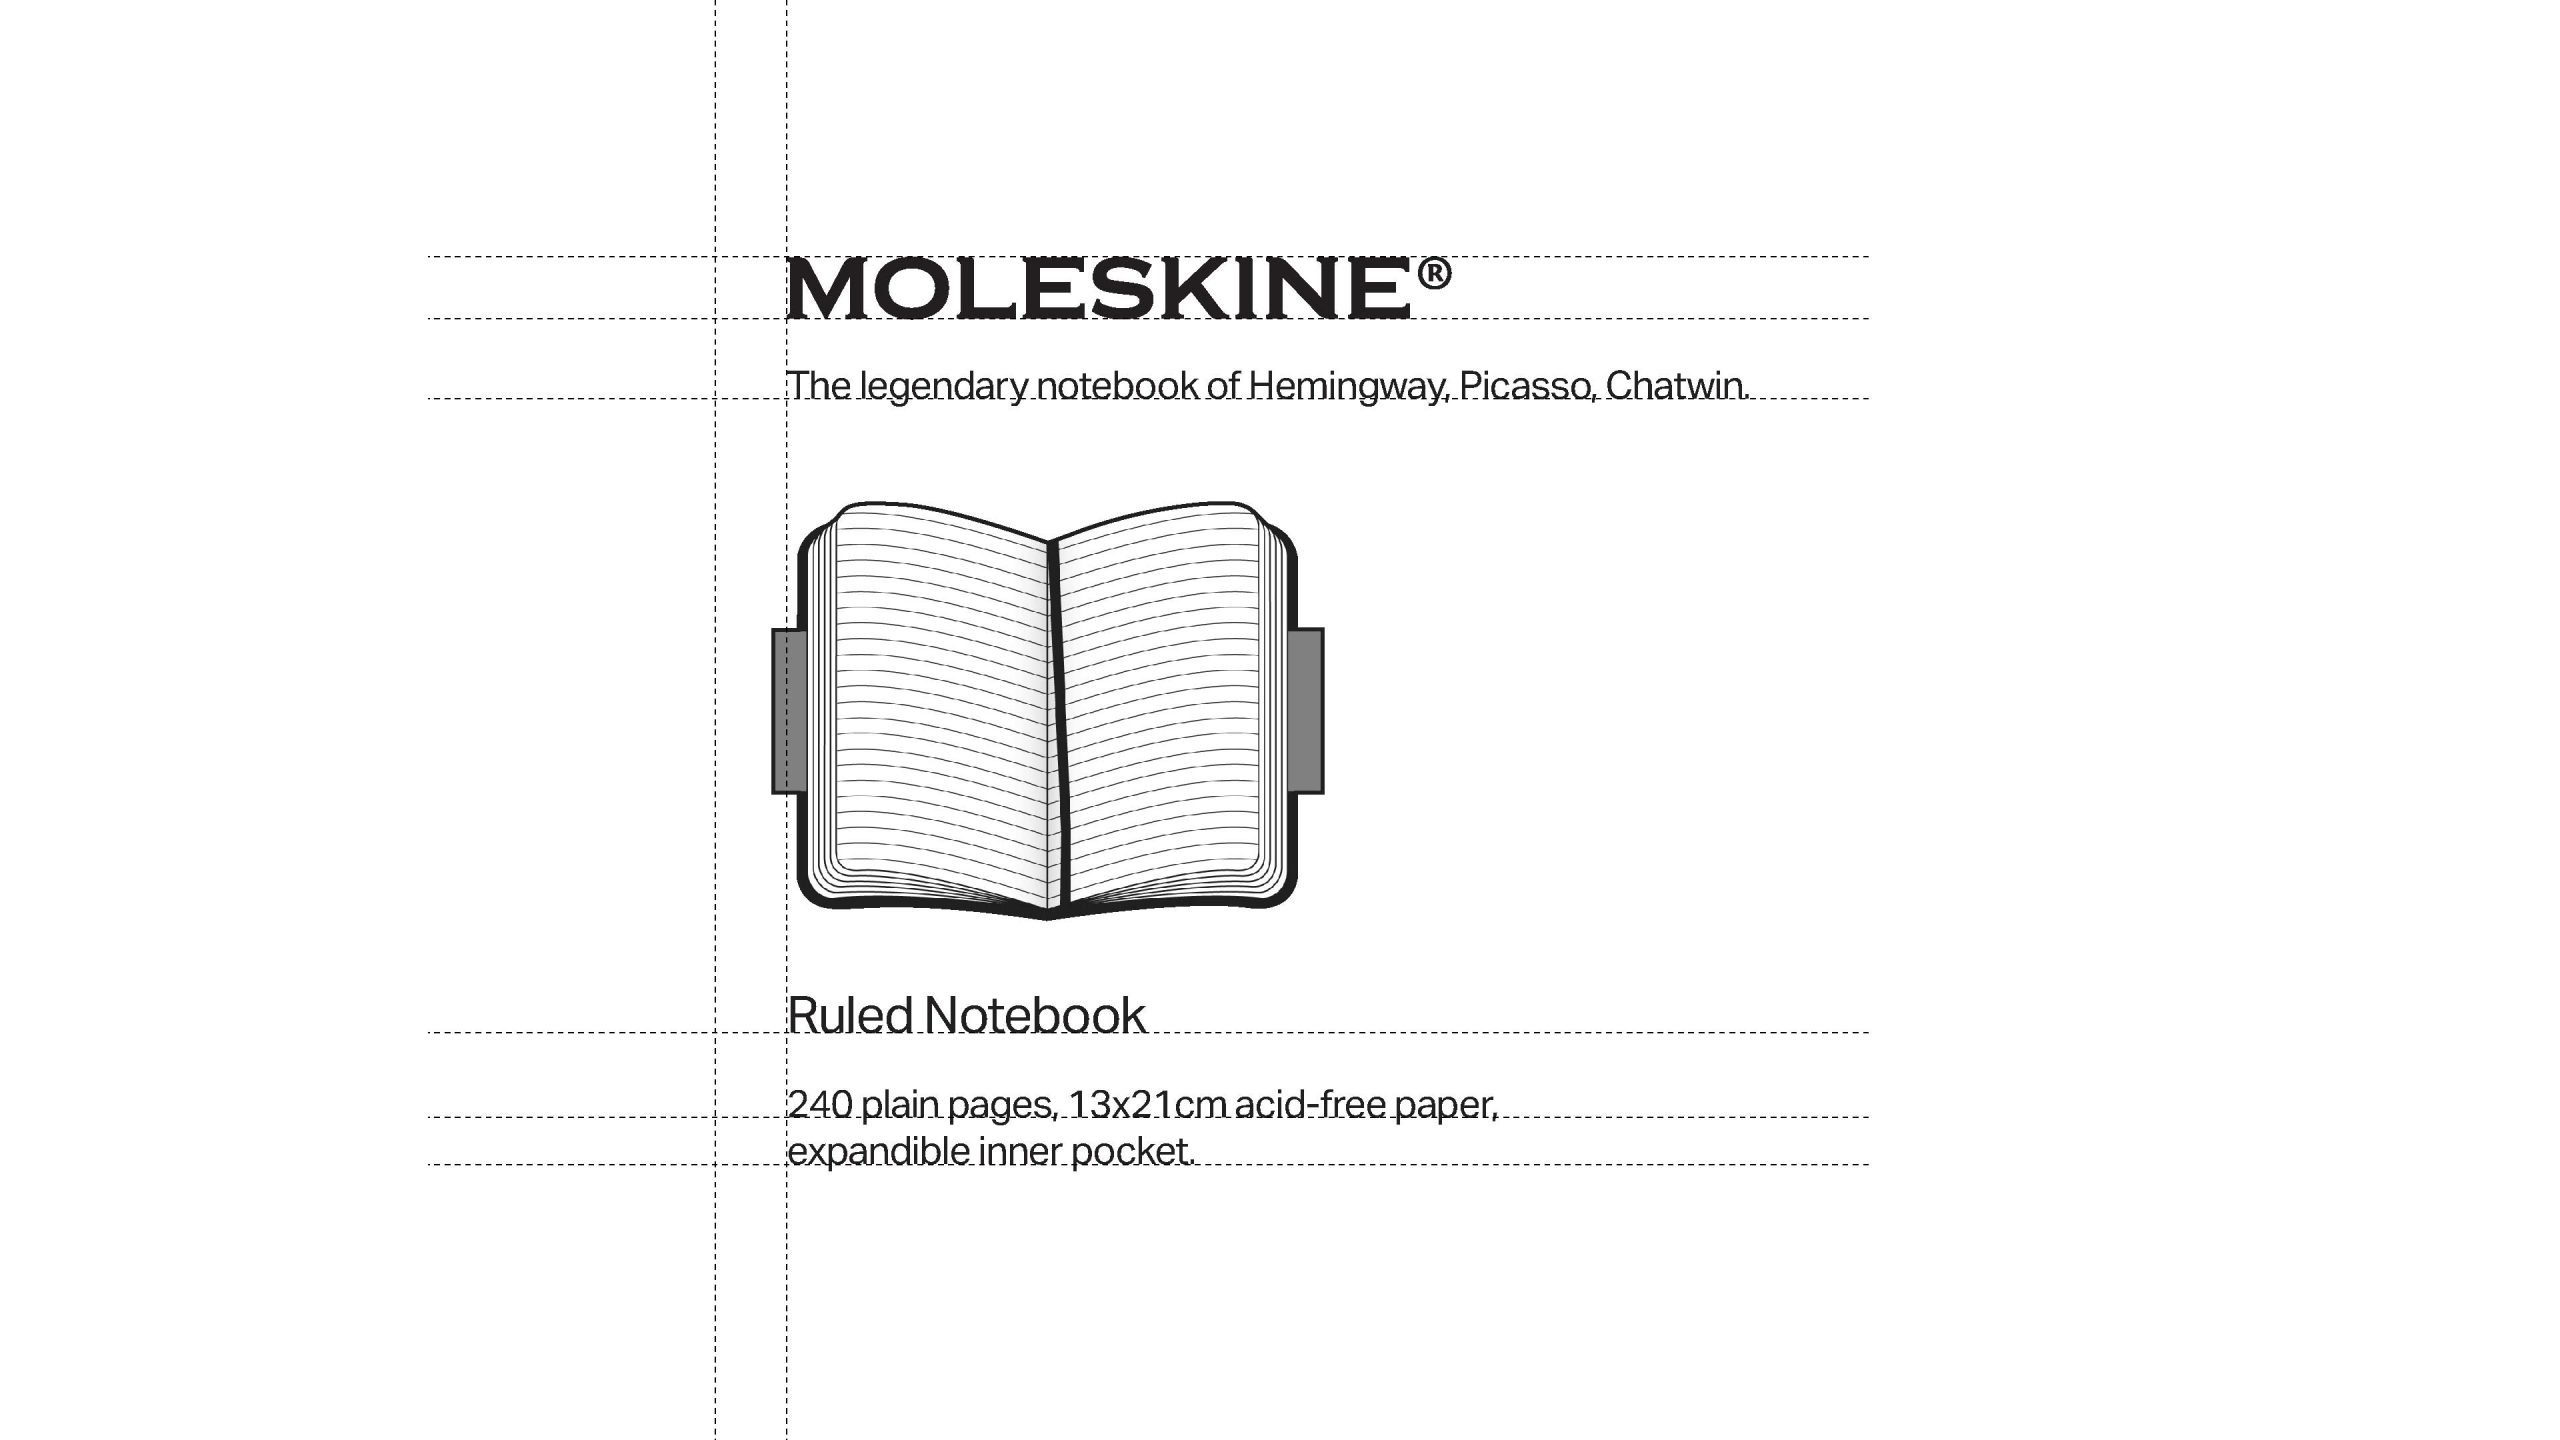 MOLESKINE-notebooks-04